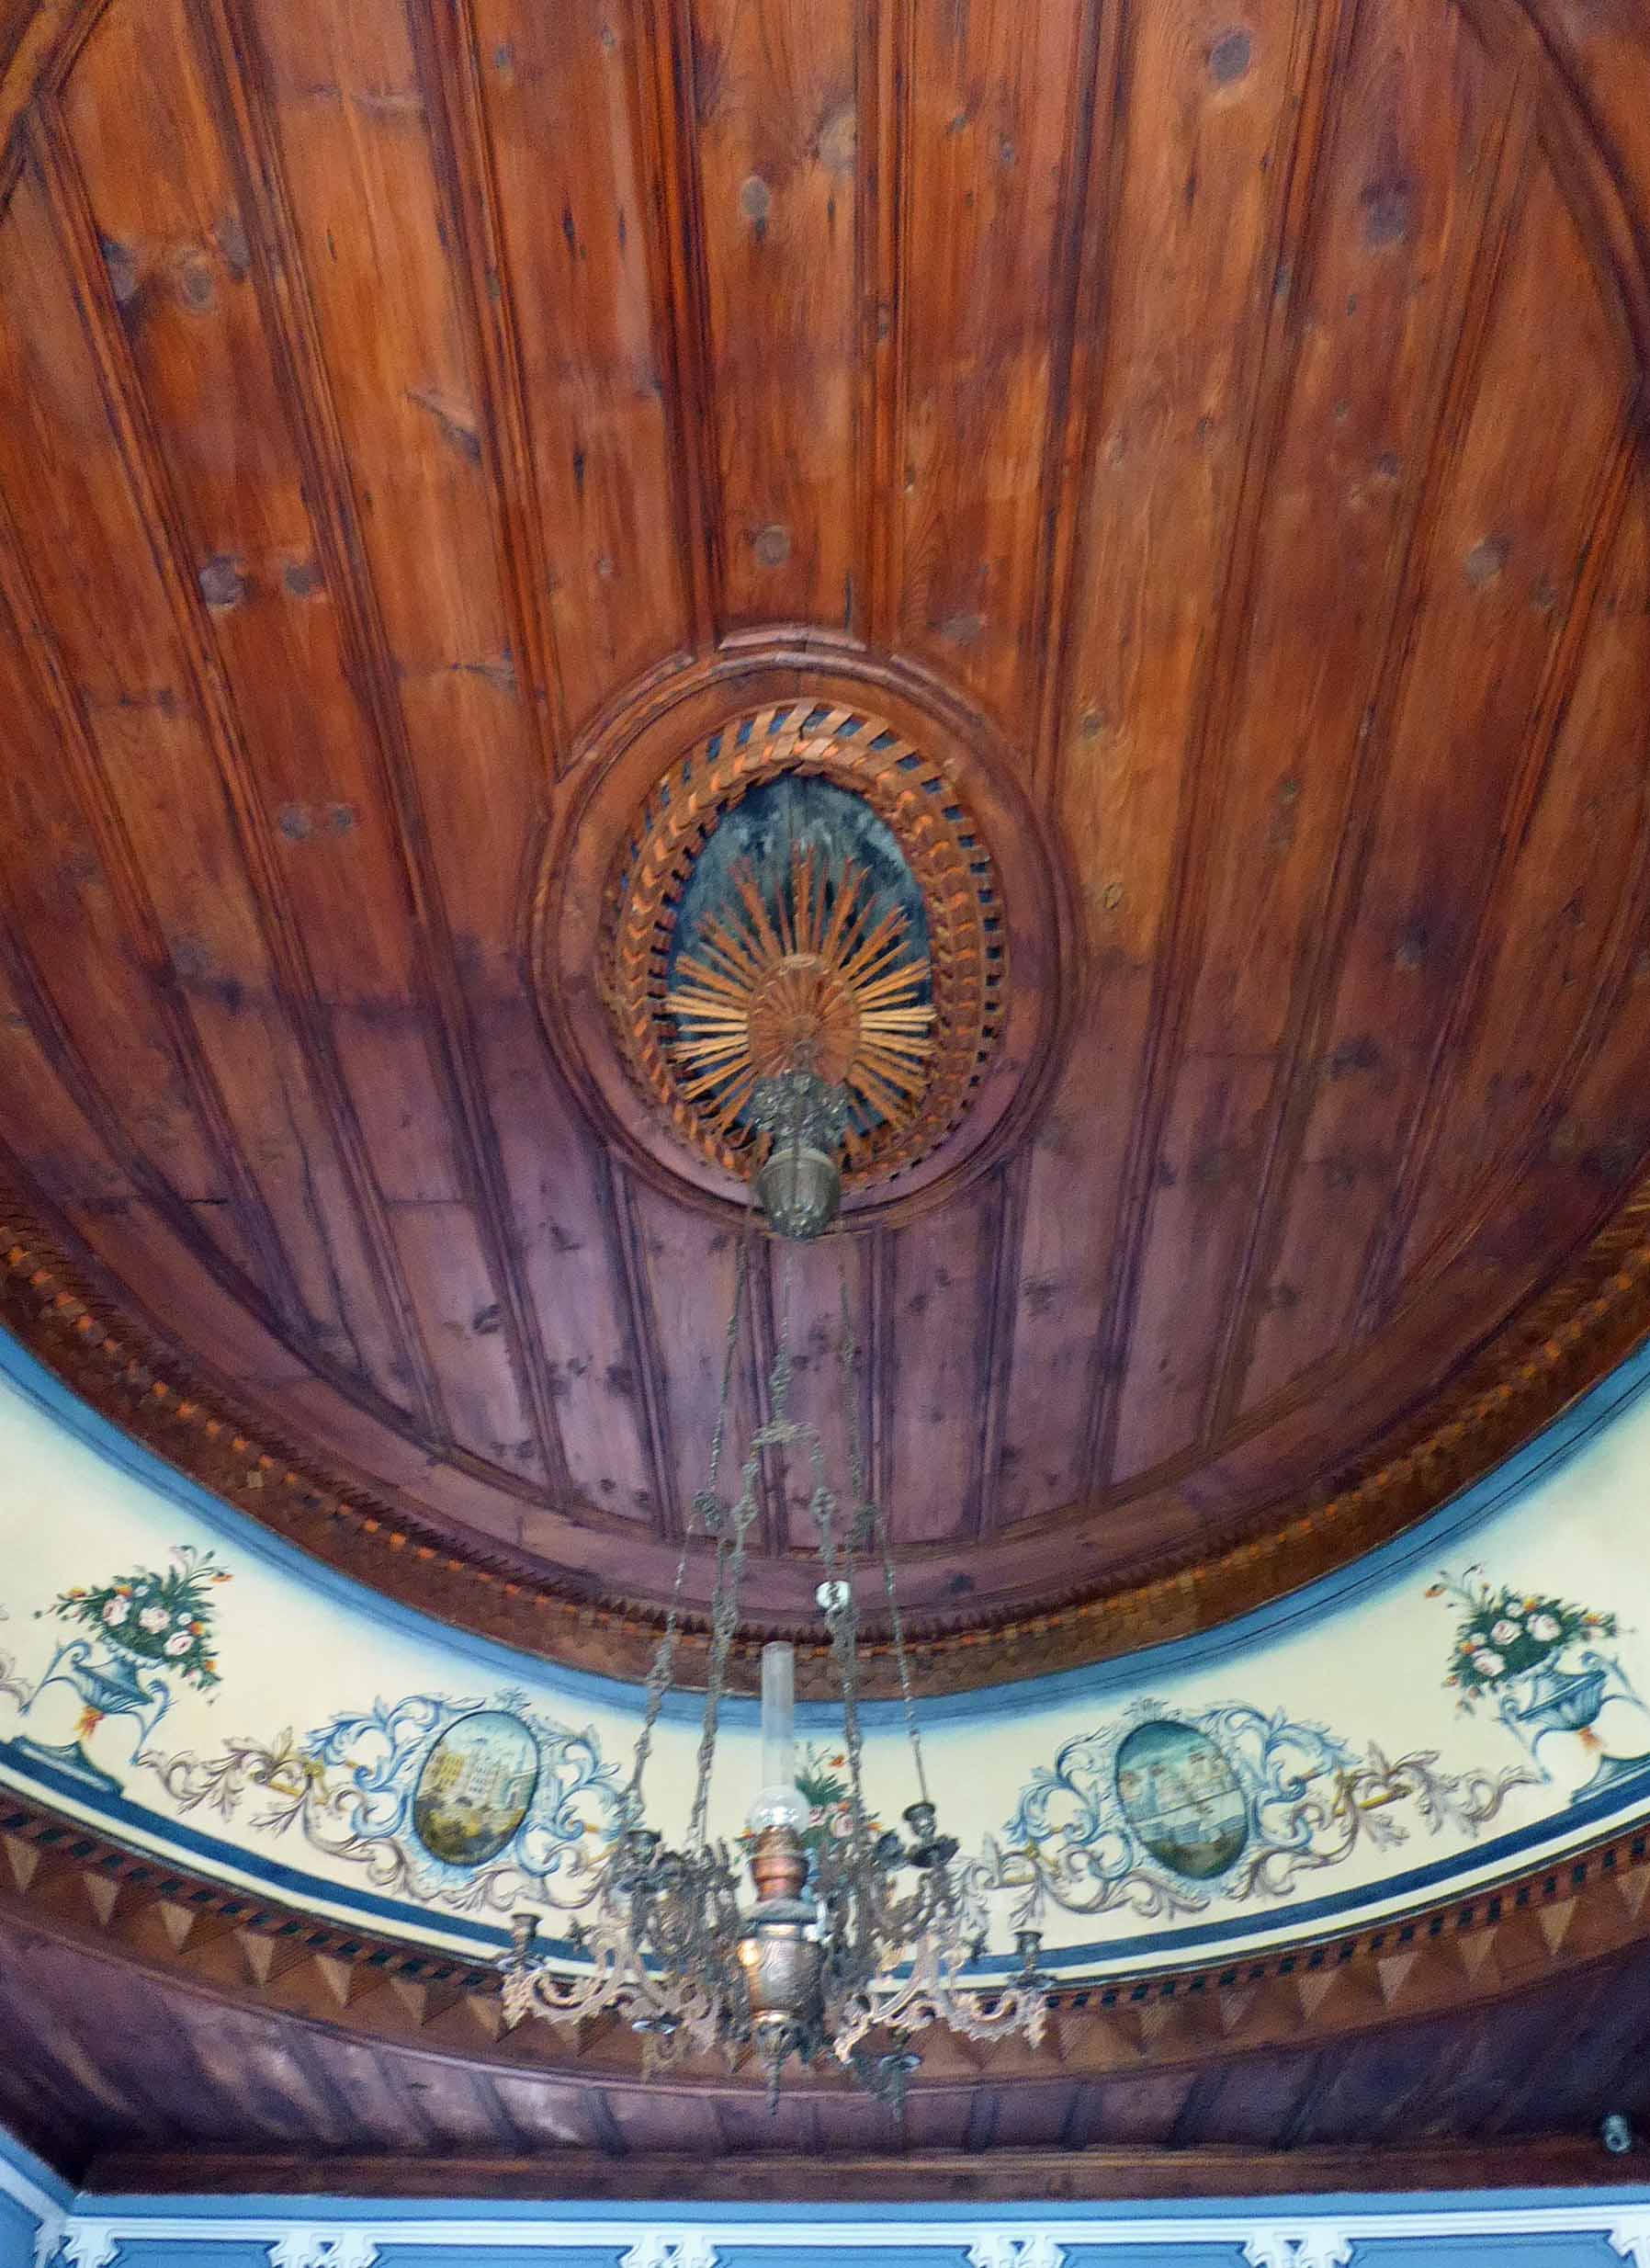 Carved wooden ceiling with painted frieze